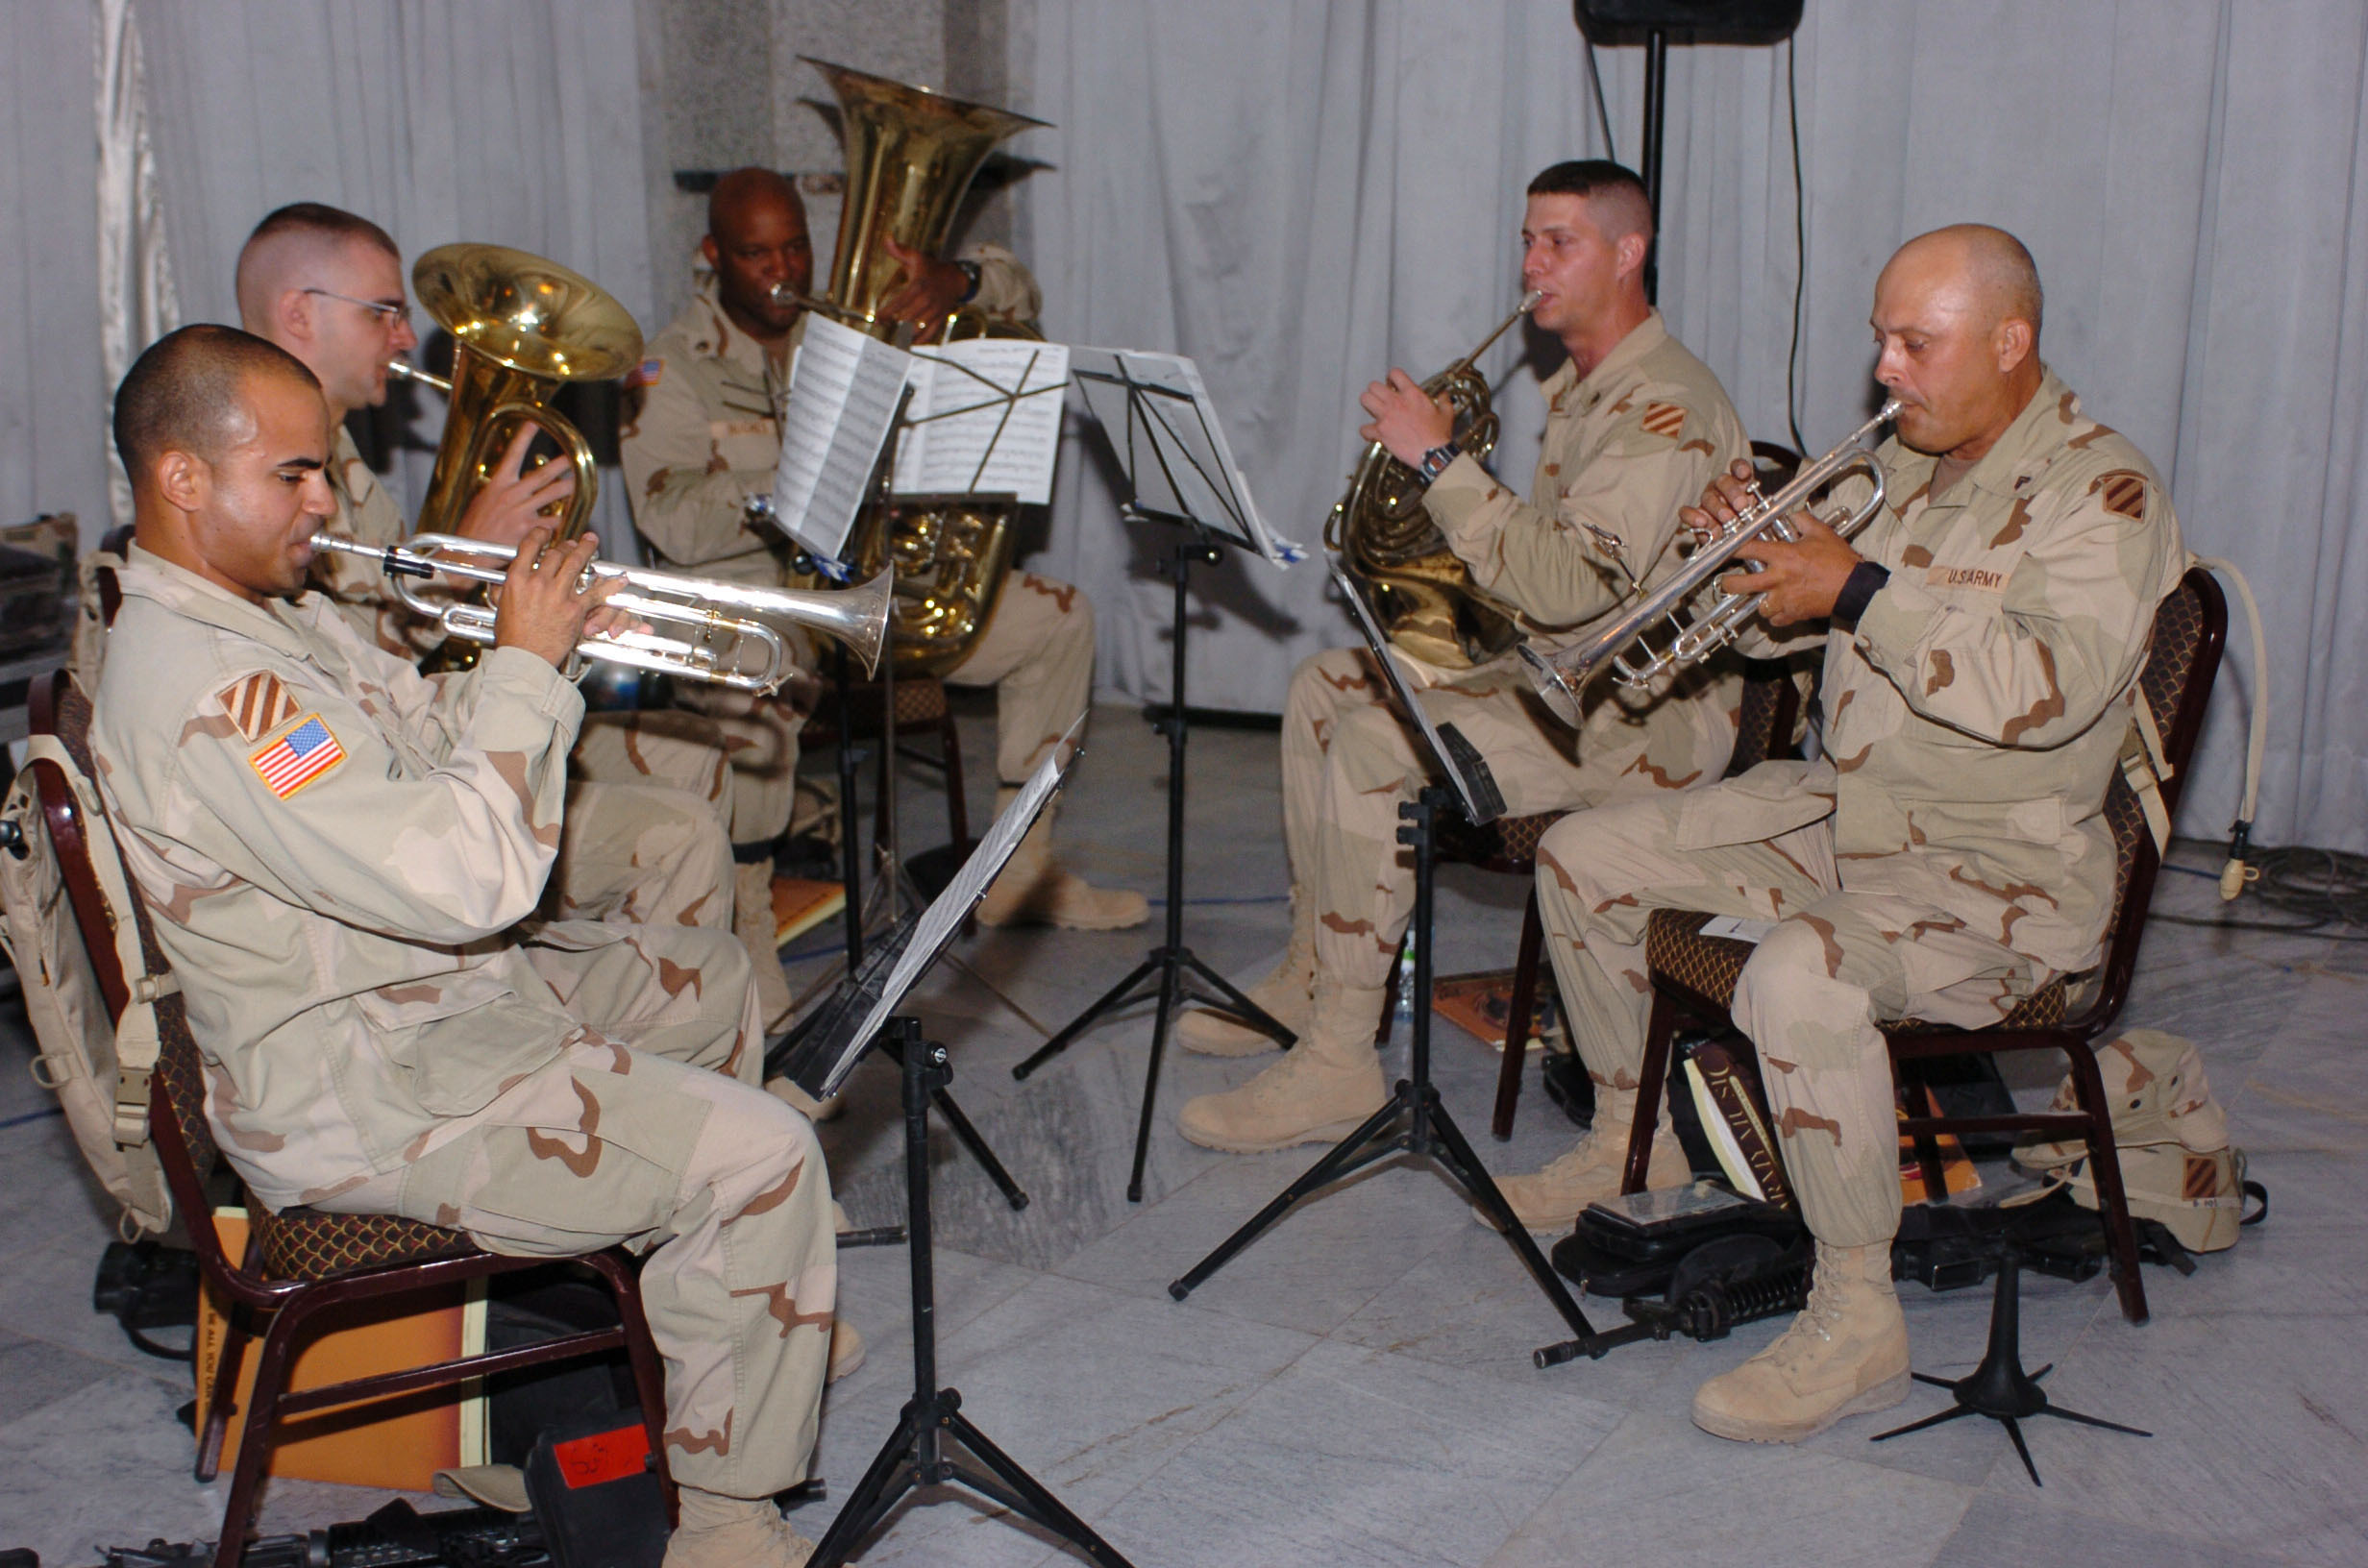 The brass ensemble from the 3rd Infantry Division Band, played a number of patriotic songs as part of the Memorial Day Remembrance Ceremony held at Al-Faw Palace on Camp Victory, Iraq. photo by Sgt. Michael J. Carden (released)